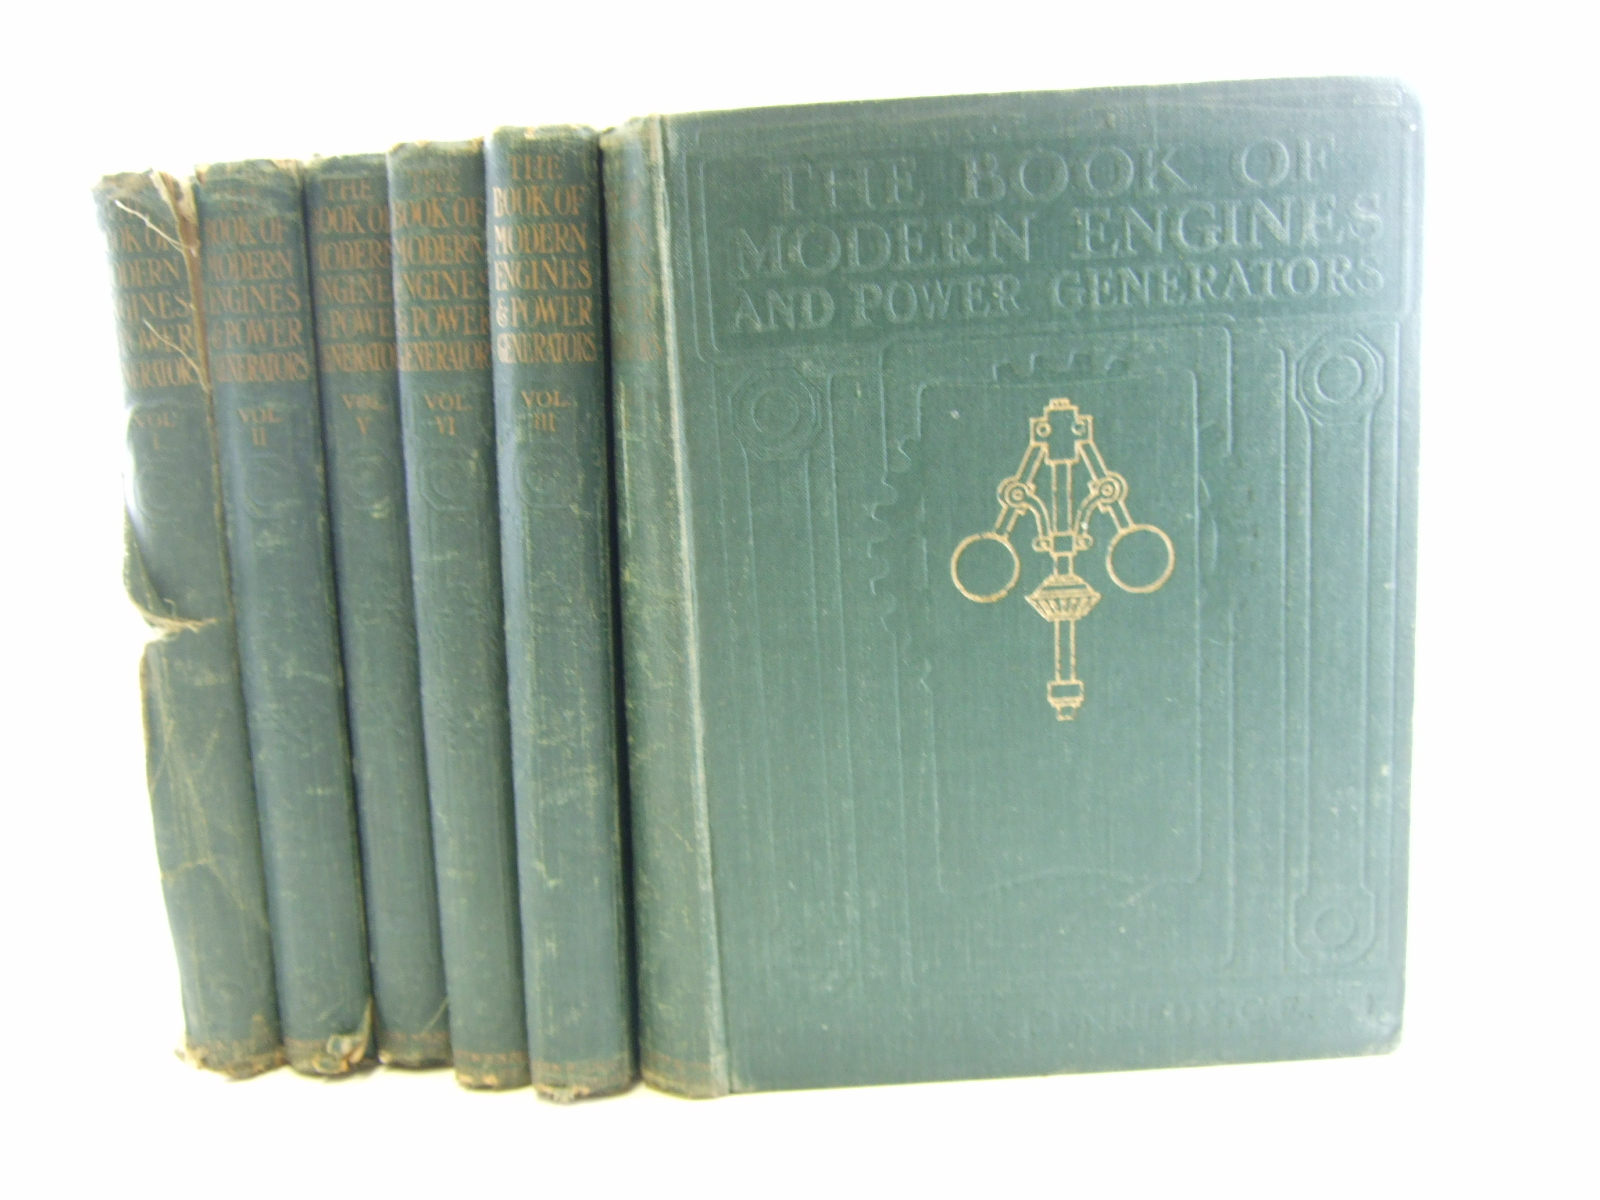 Photo of THE BOOK OF MODERN ENGINES (6 VOLUMES) written by Kennedy, Rankin published by Caxton Publishing Company Limited (STOCK CODE: 1806583)  for sale by Stella & Rose's Books